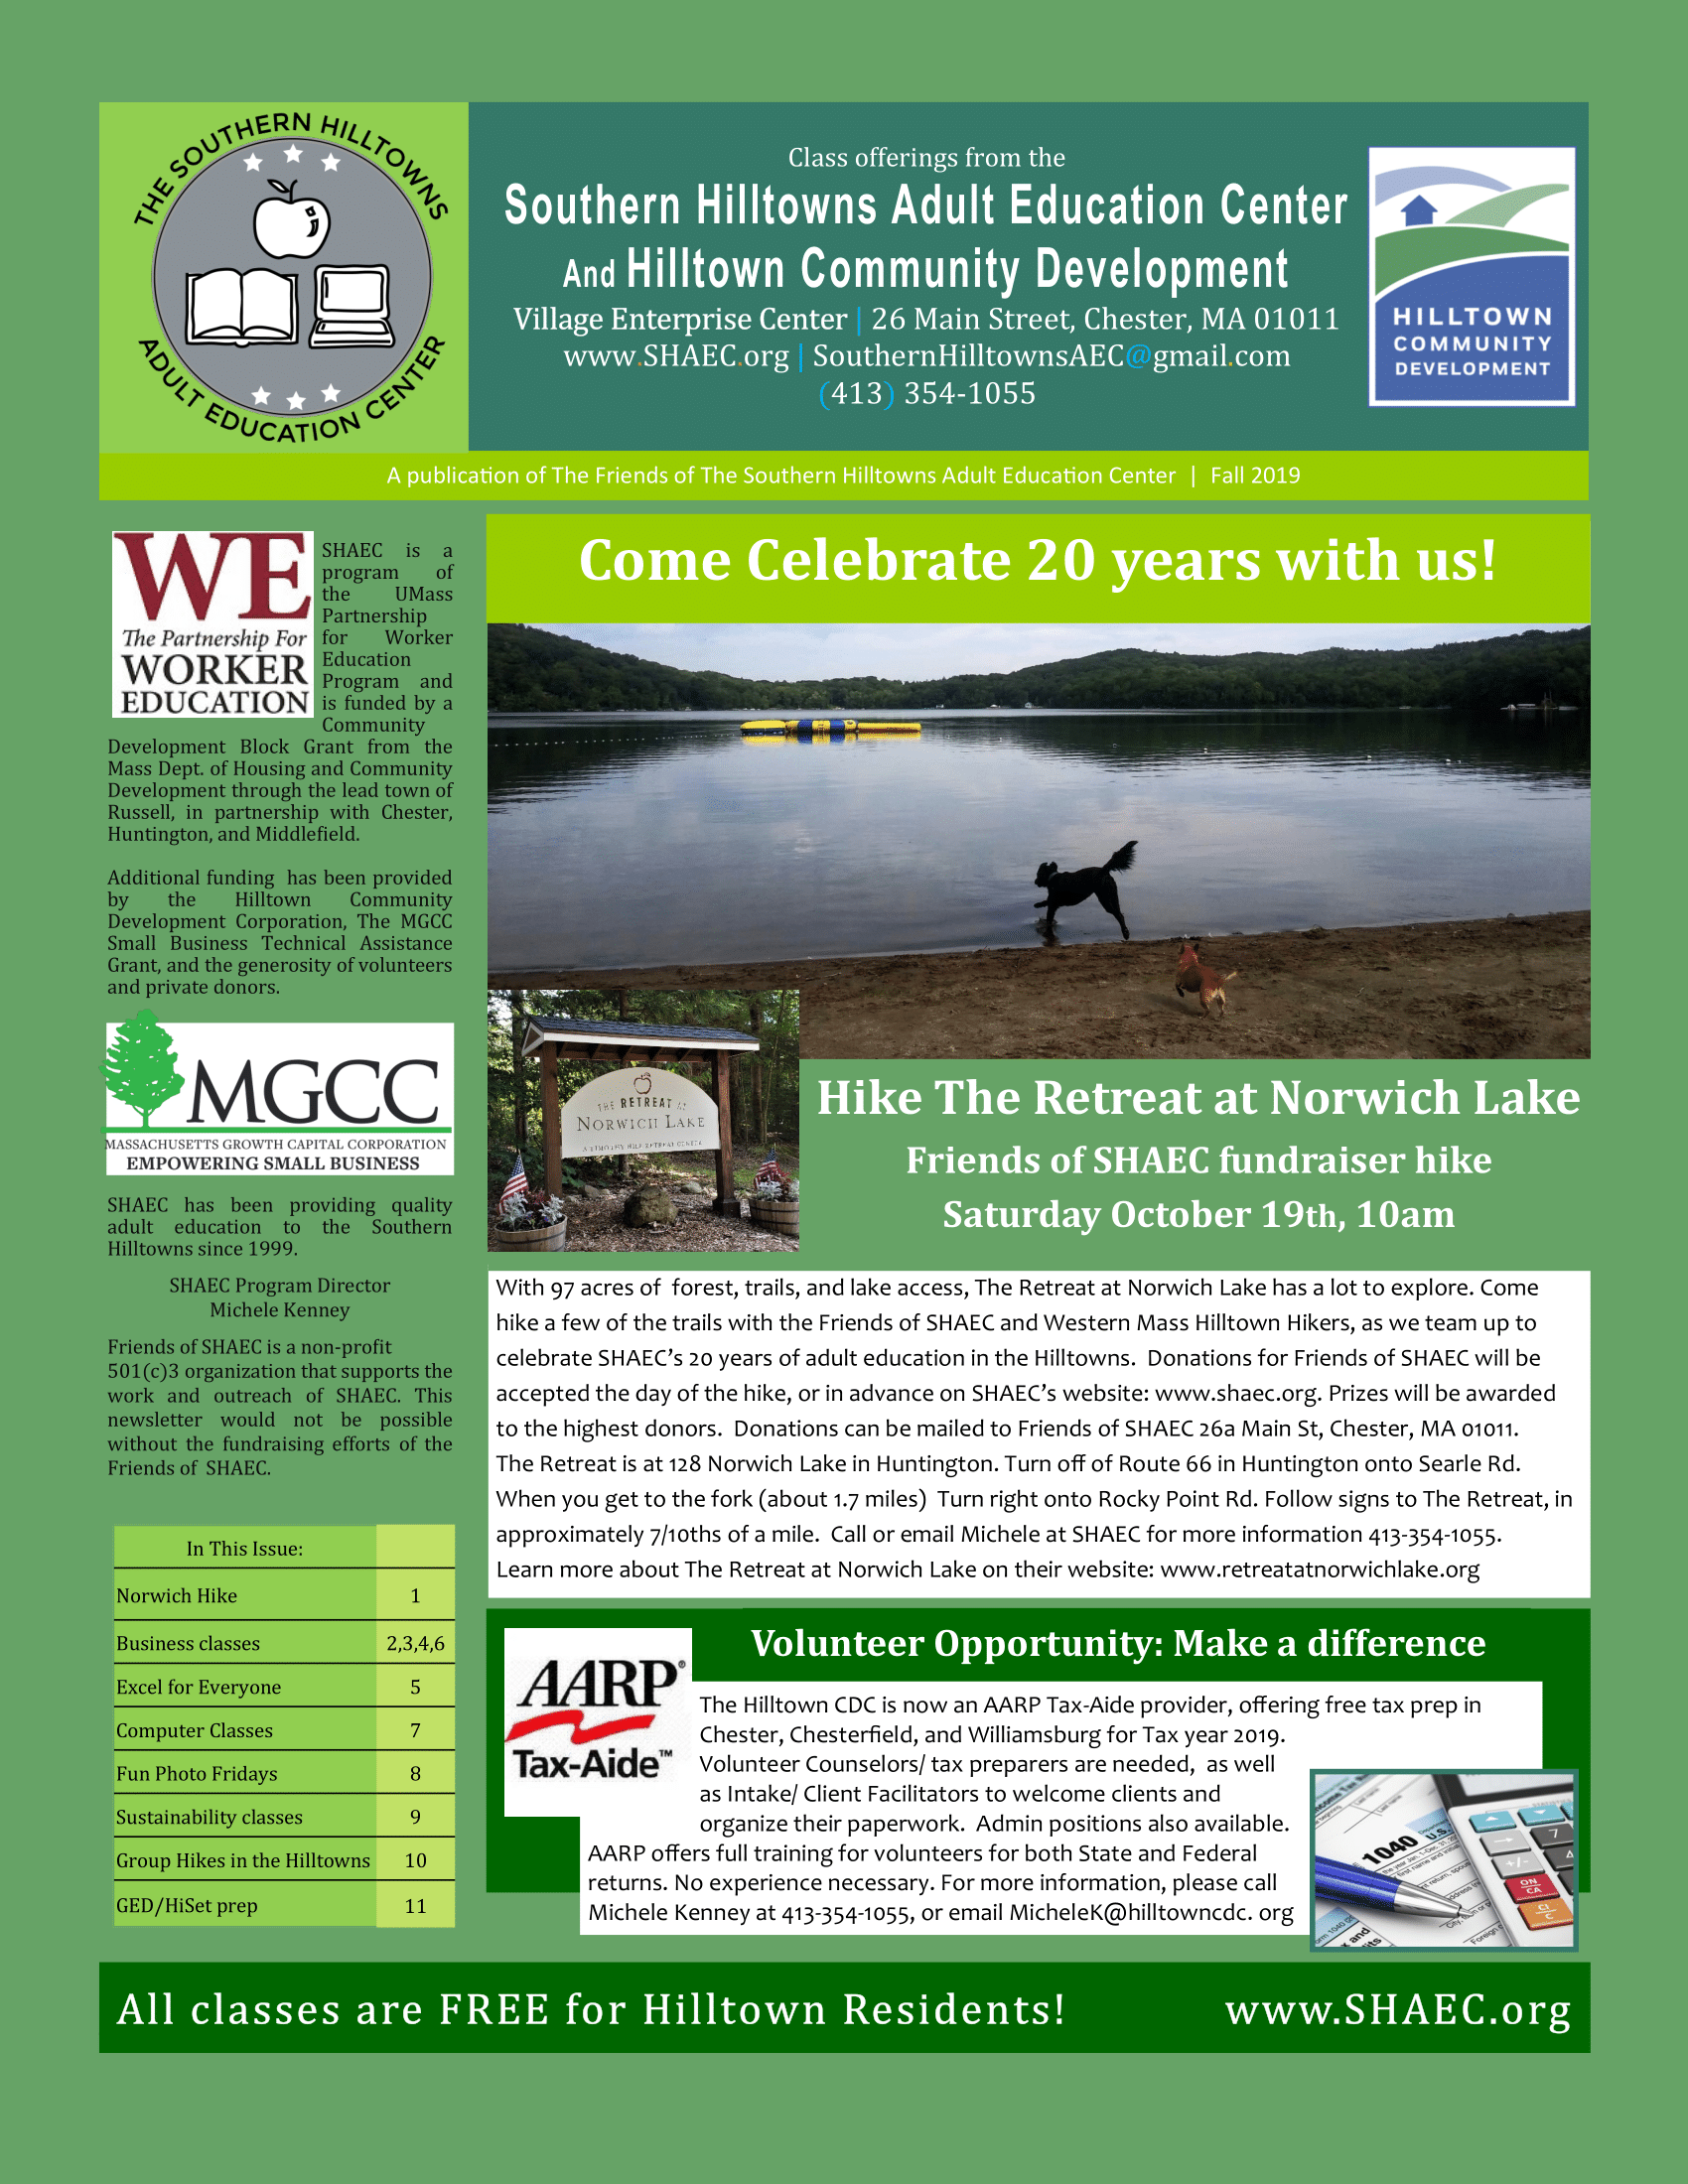 SHAEC FAll 2019 Newsletter - Cover-1.png